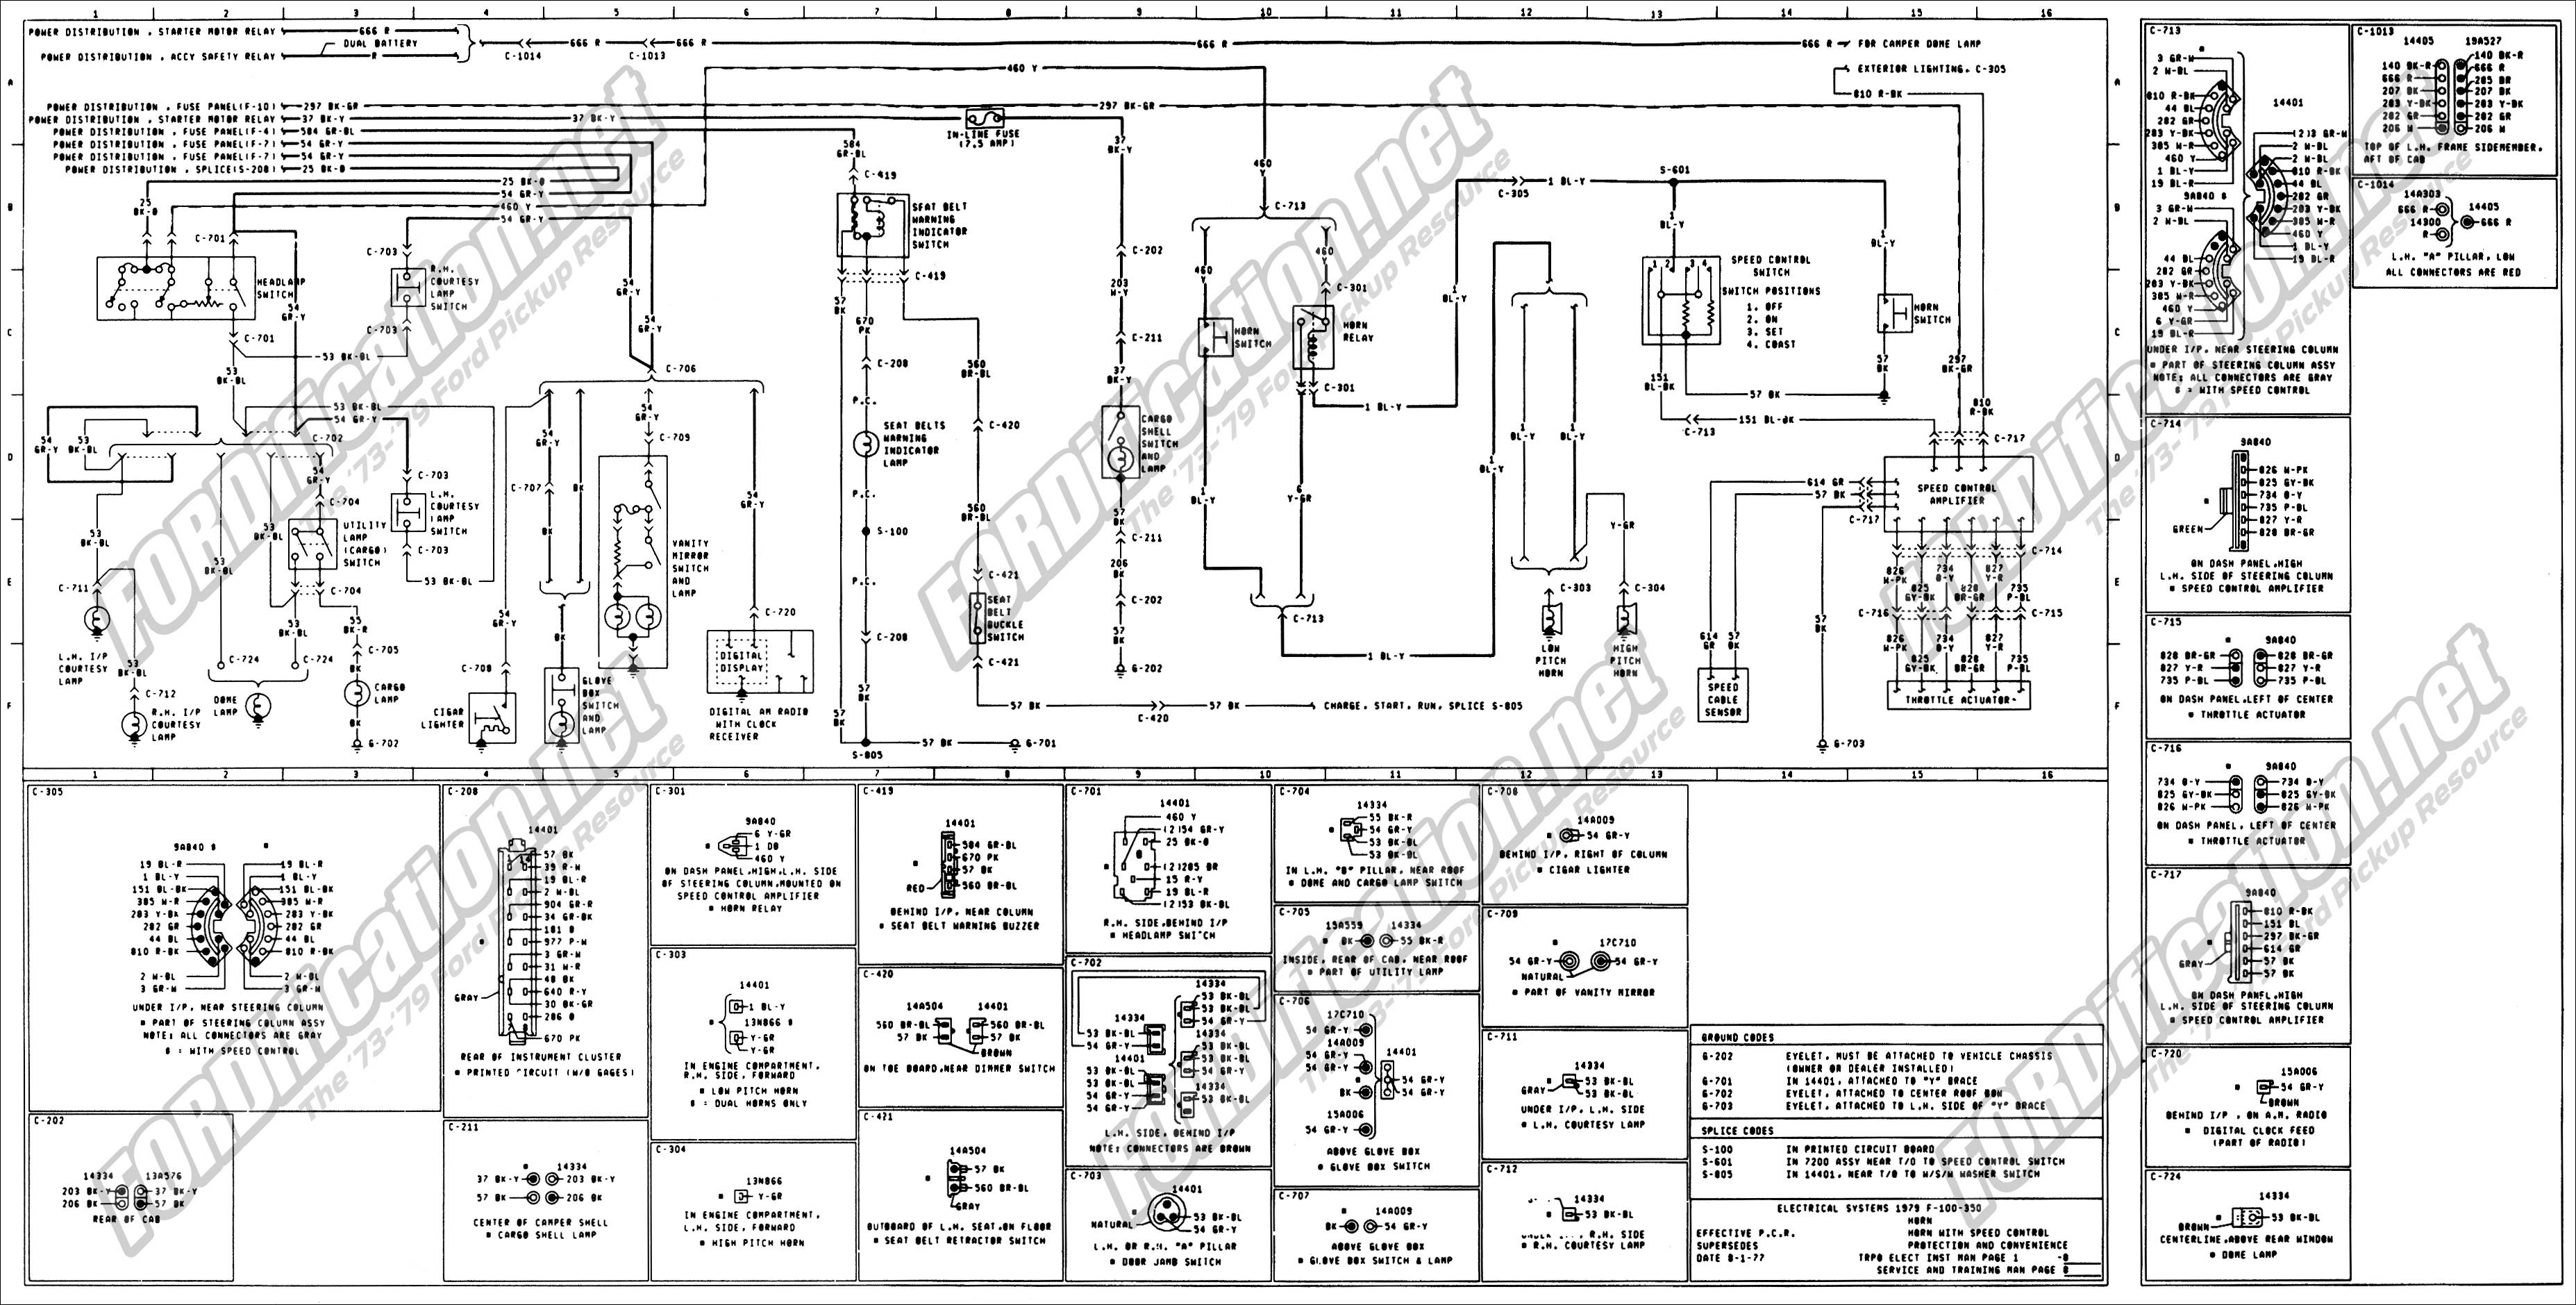 Ford Courier Wiring Enthusiast Wiring Diagrams \u2022 Ford Think Wiring- Diagram 1979 Ford Courier Wiring Diagram